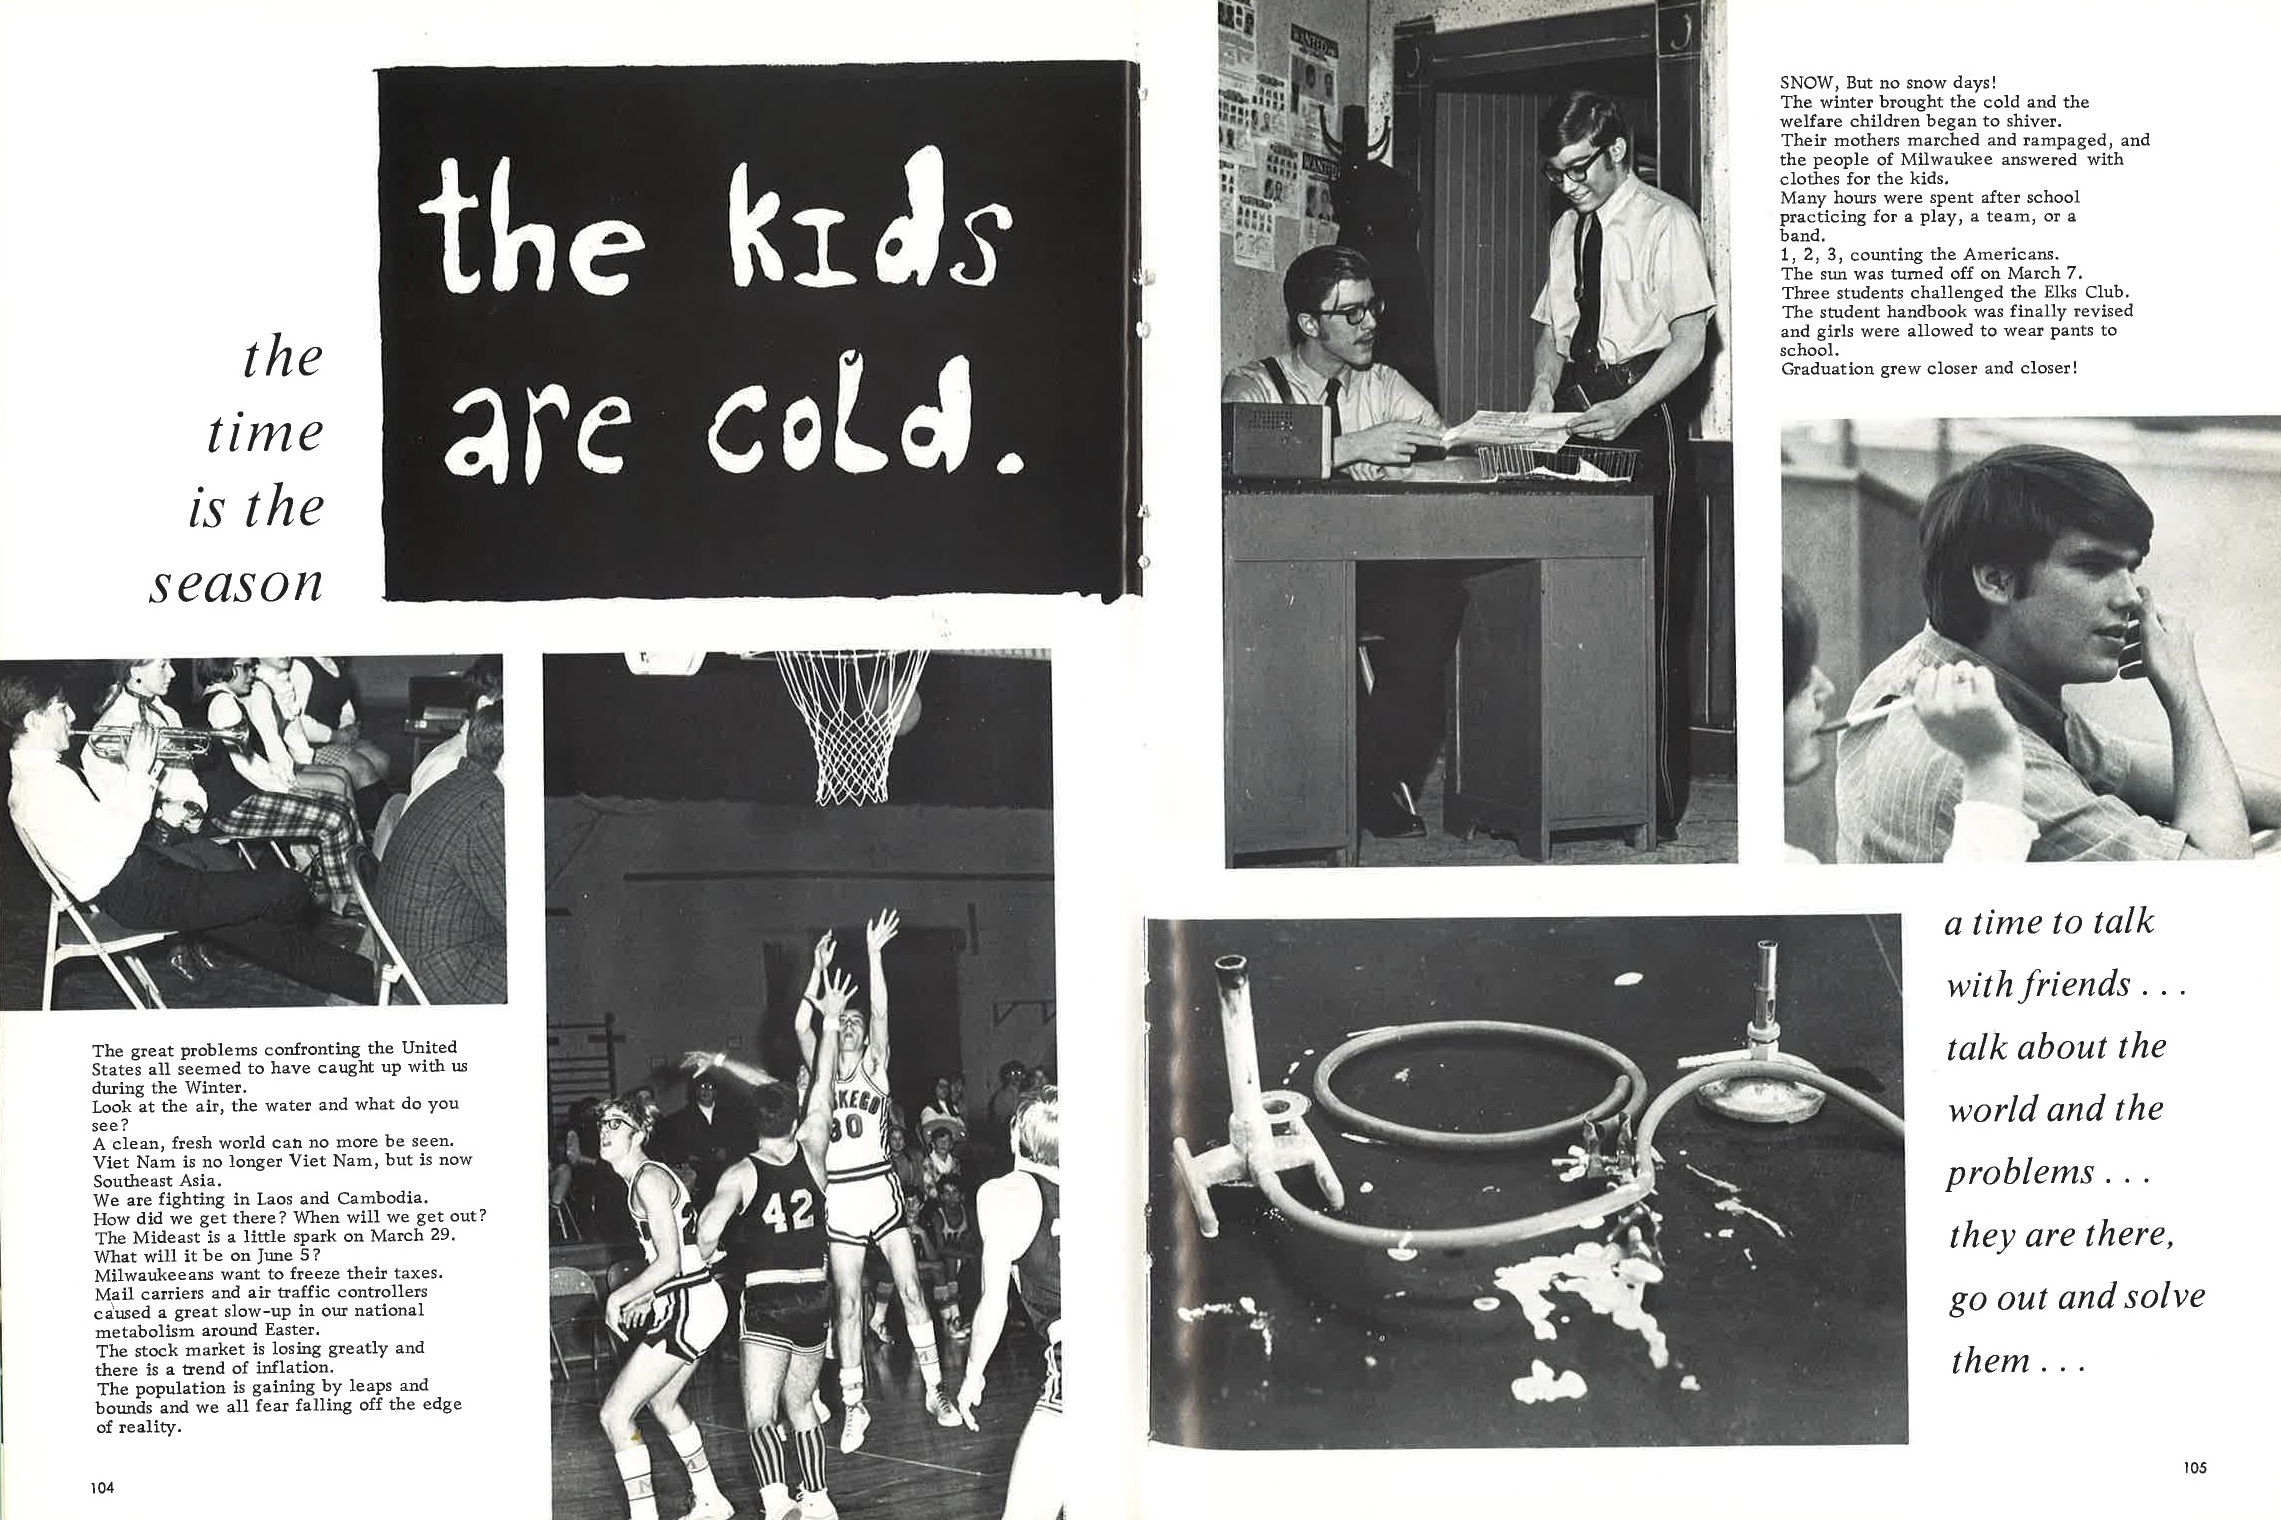 1970_Yearbook_104-105.jpg